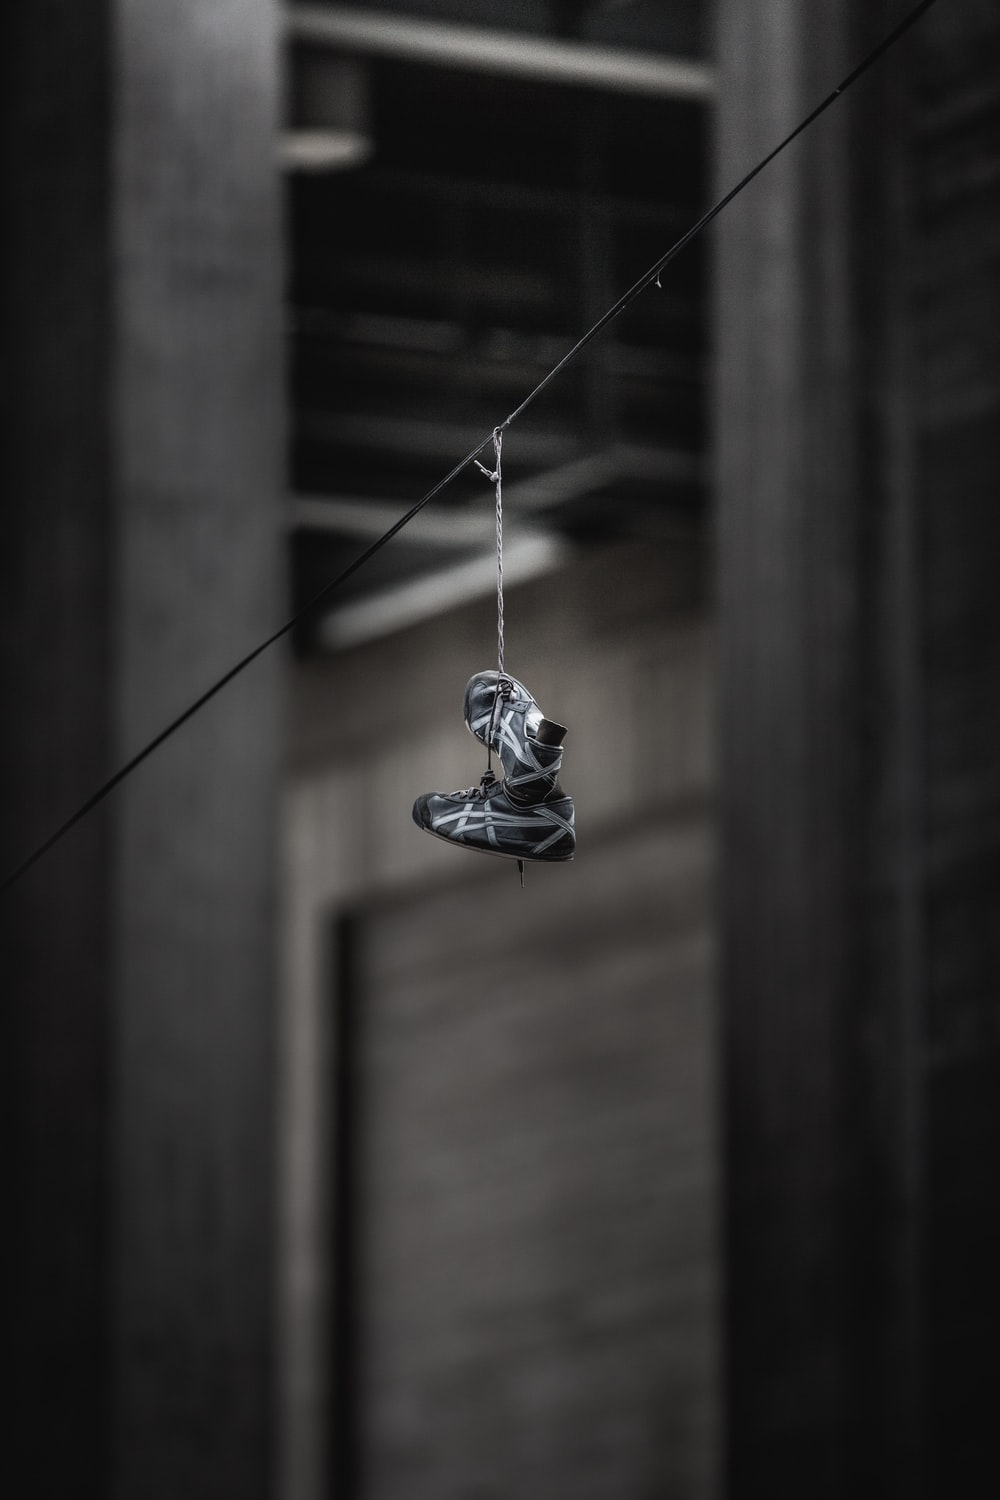 pair of black-and-gray ASICS shoes hanging on wire